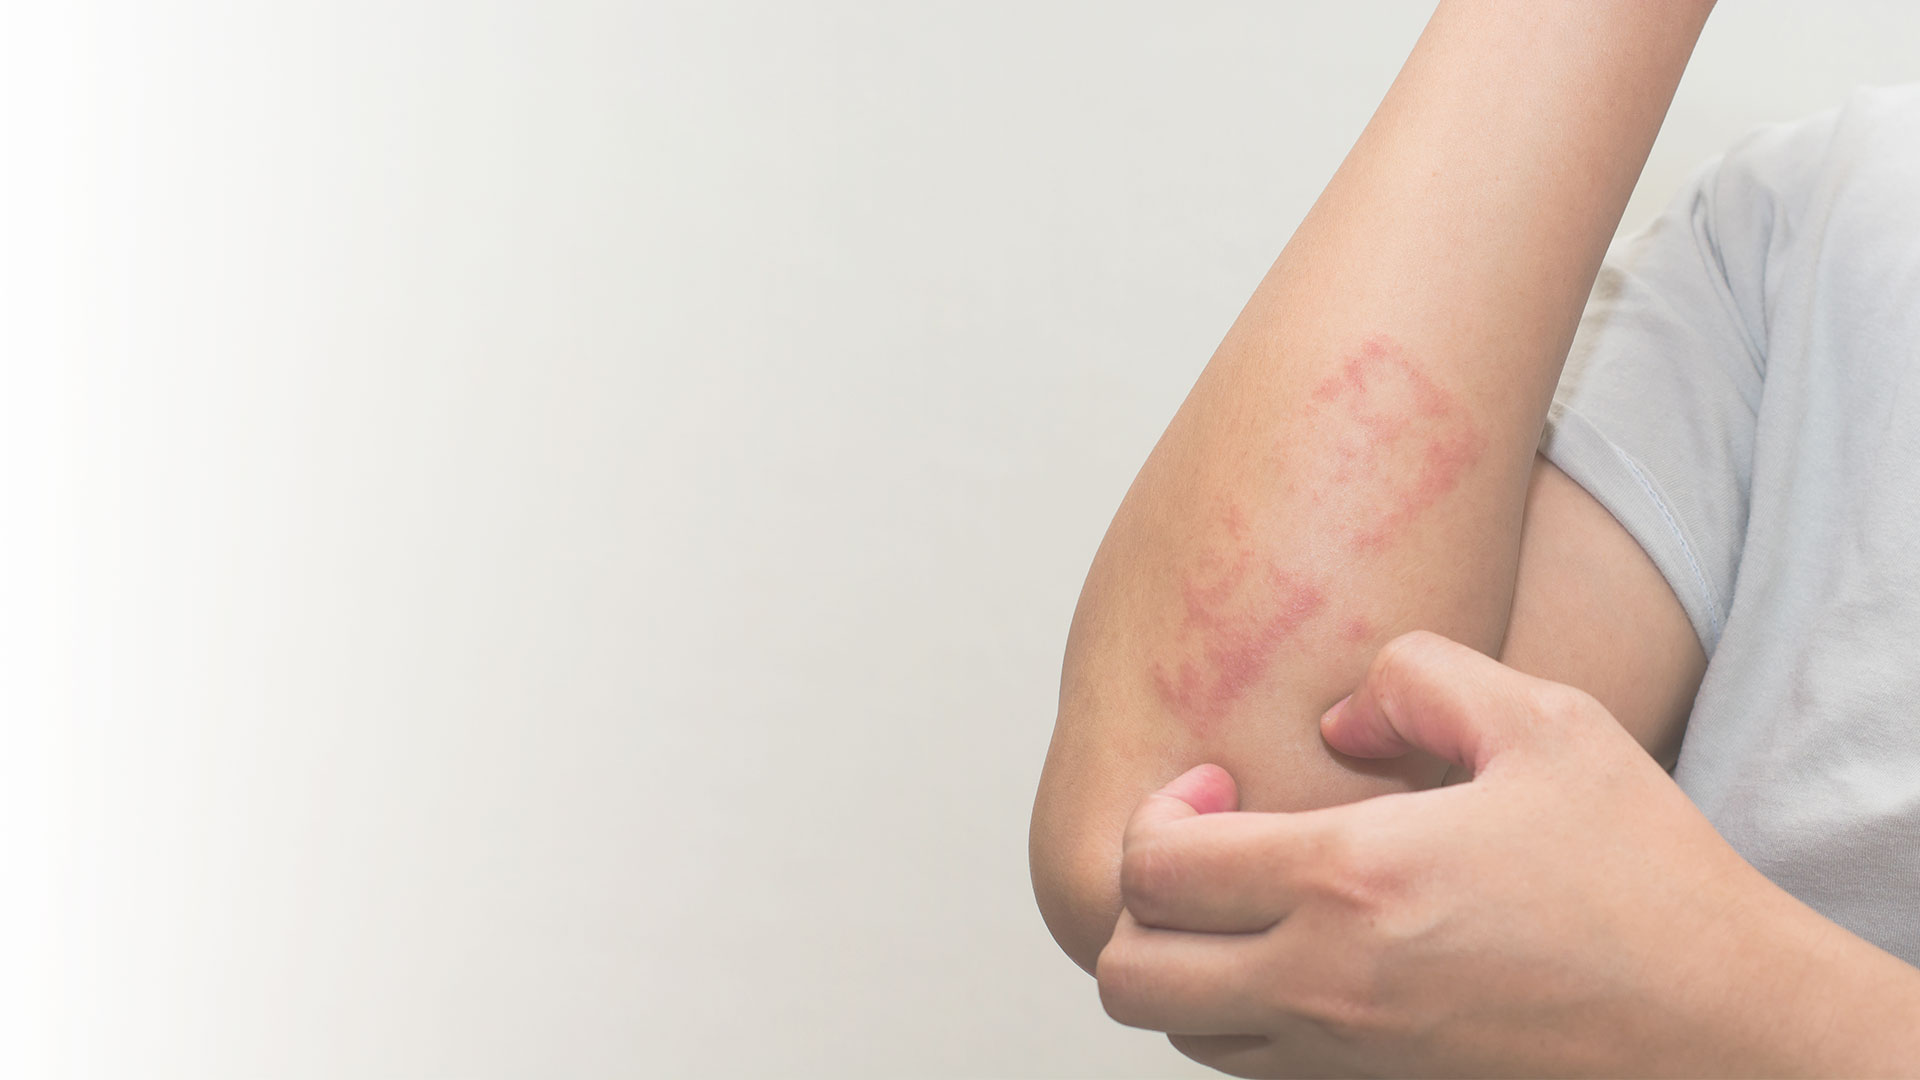 pediatric rashes treatment, NY, NY